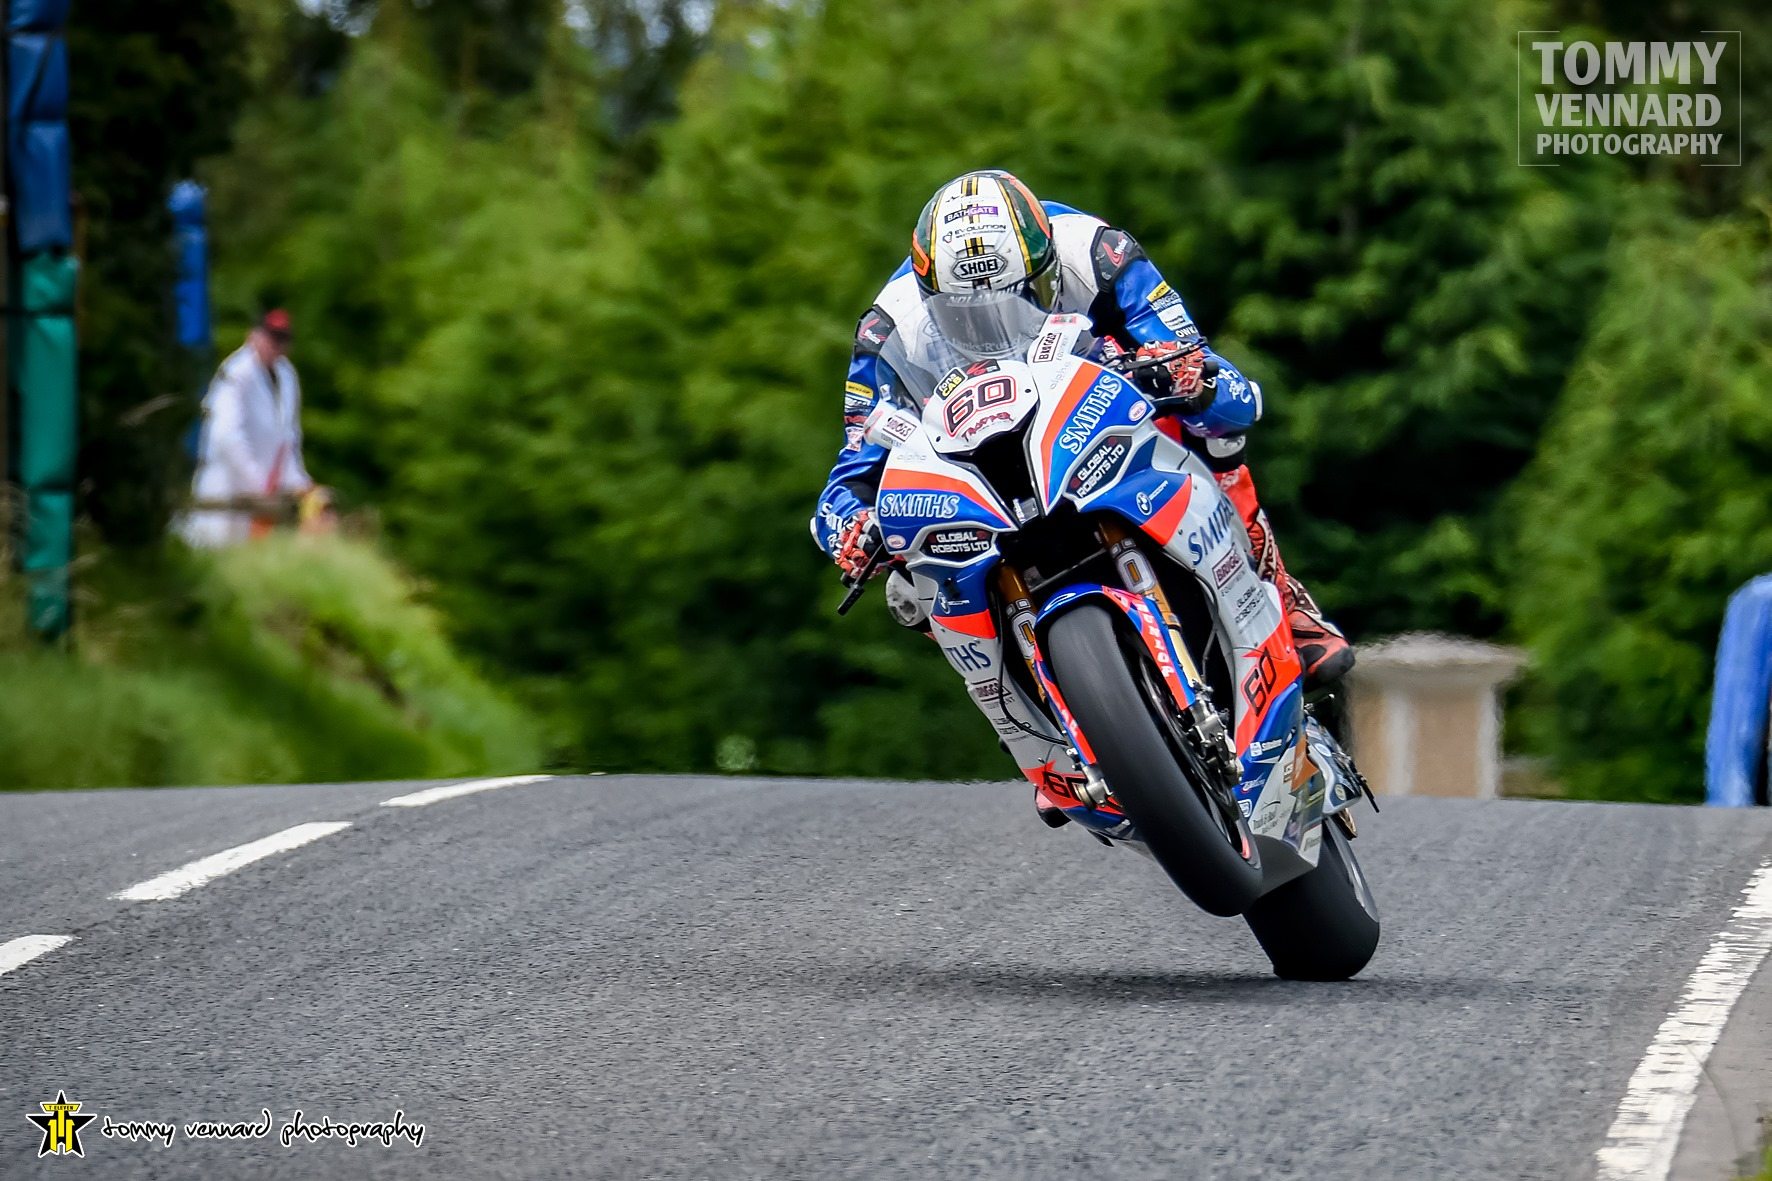 Opinion: No If's, No Buts, Hickman's The One To Beat Now At International Roads Events